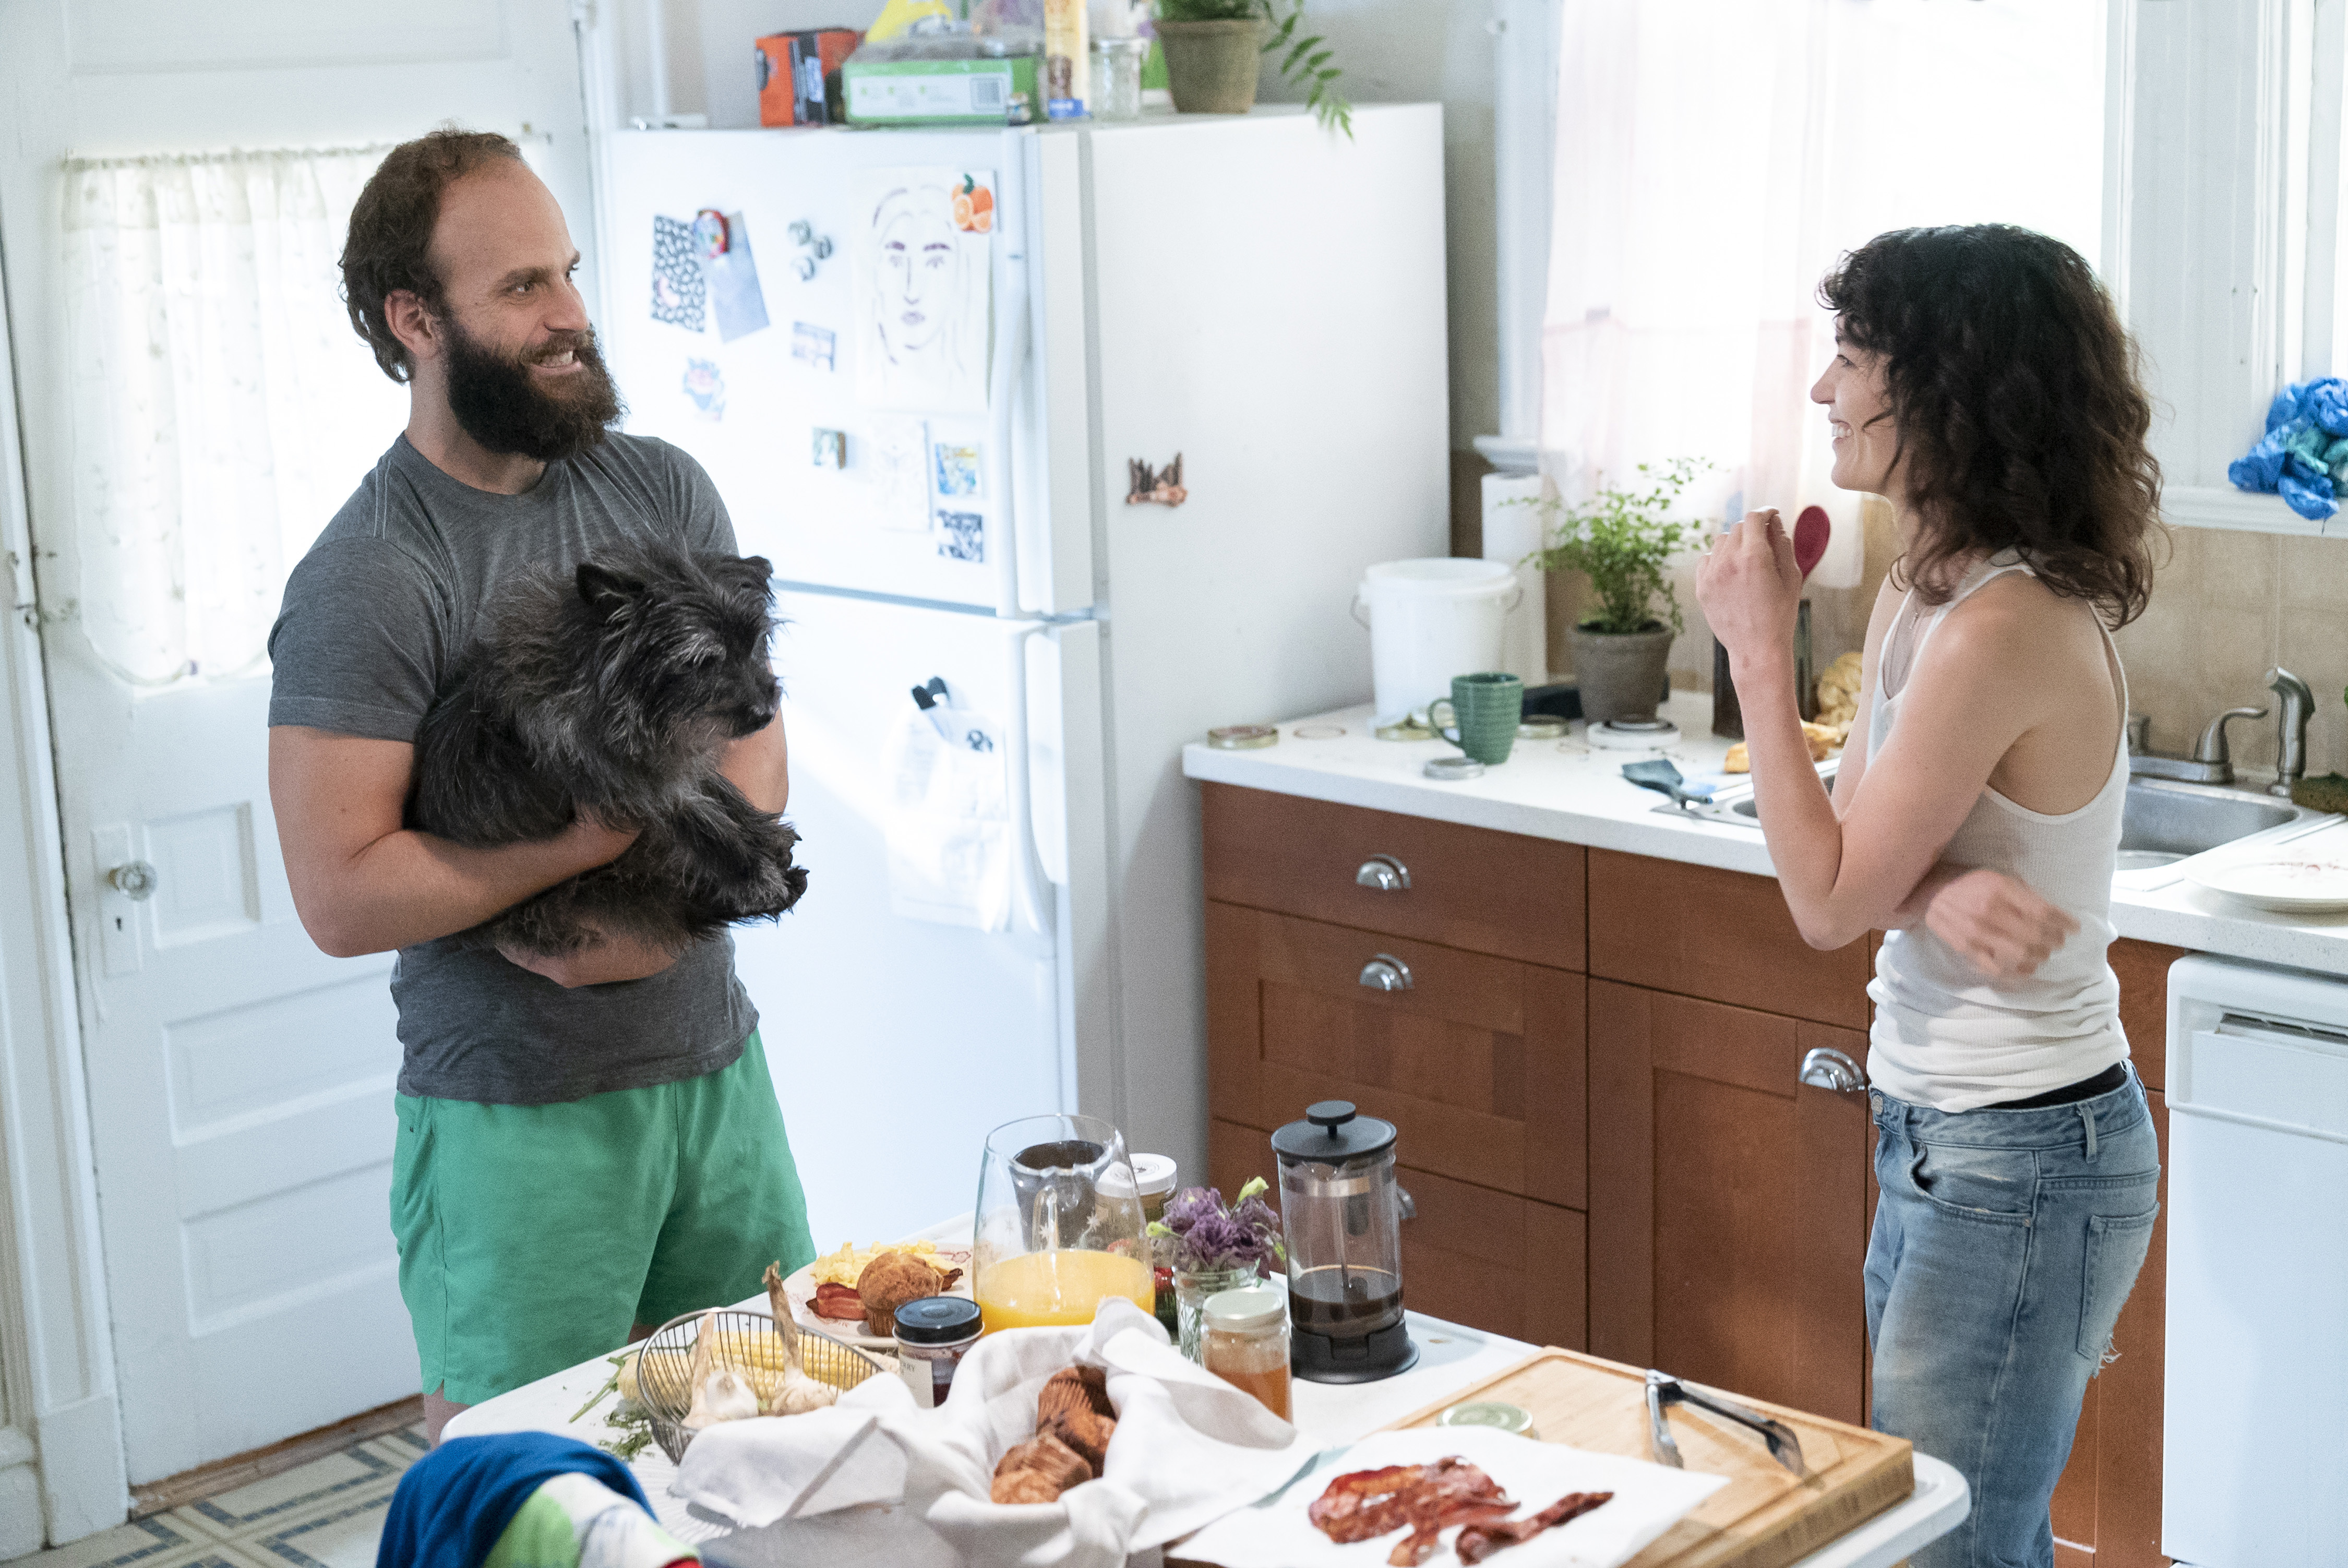 The Guy (Ben Sinclair) holds a dog in the kitchen while talking to Lee (Britt Lower) in season three of HBO's 'High Maintenance.'